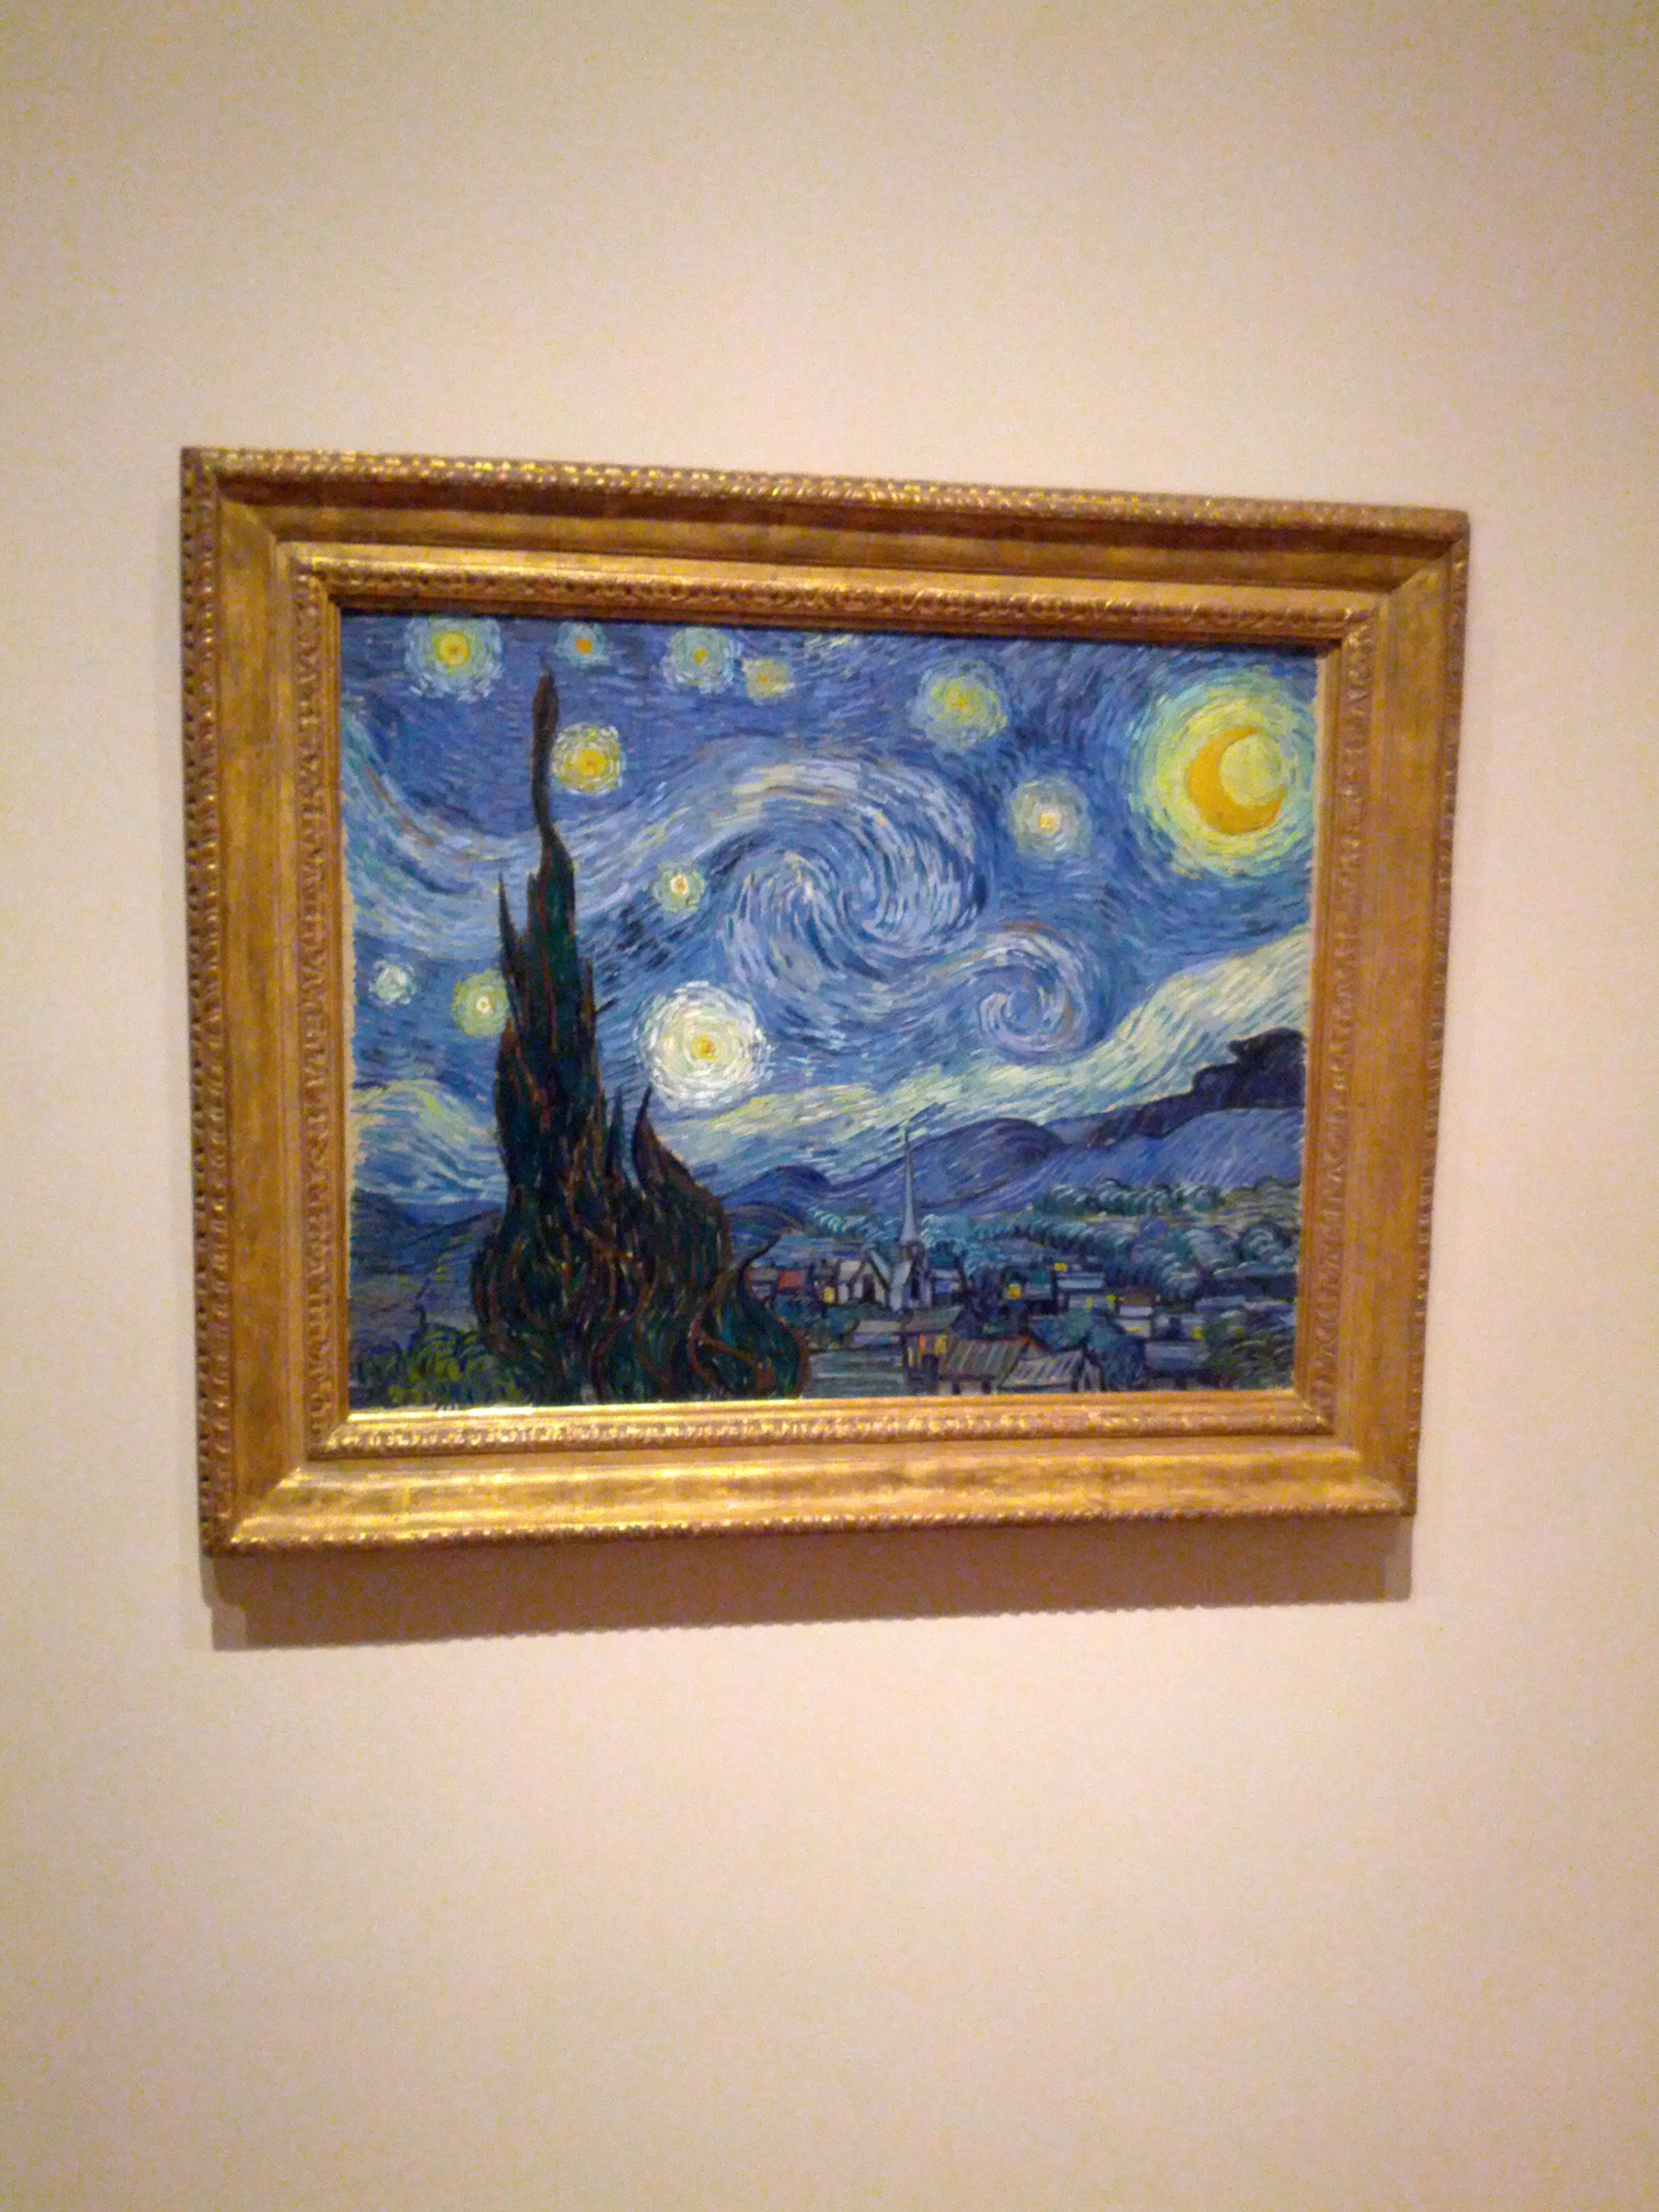 """The Starry Night"" Vincent van Gogh. One of the pieces that had a large crowd around it at the MoMA in NYC."